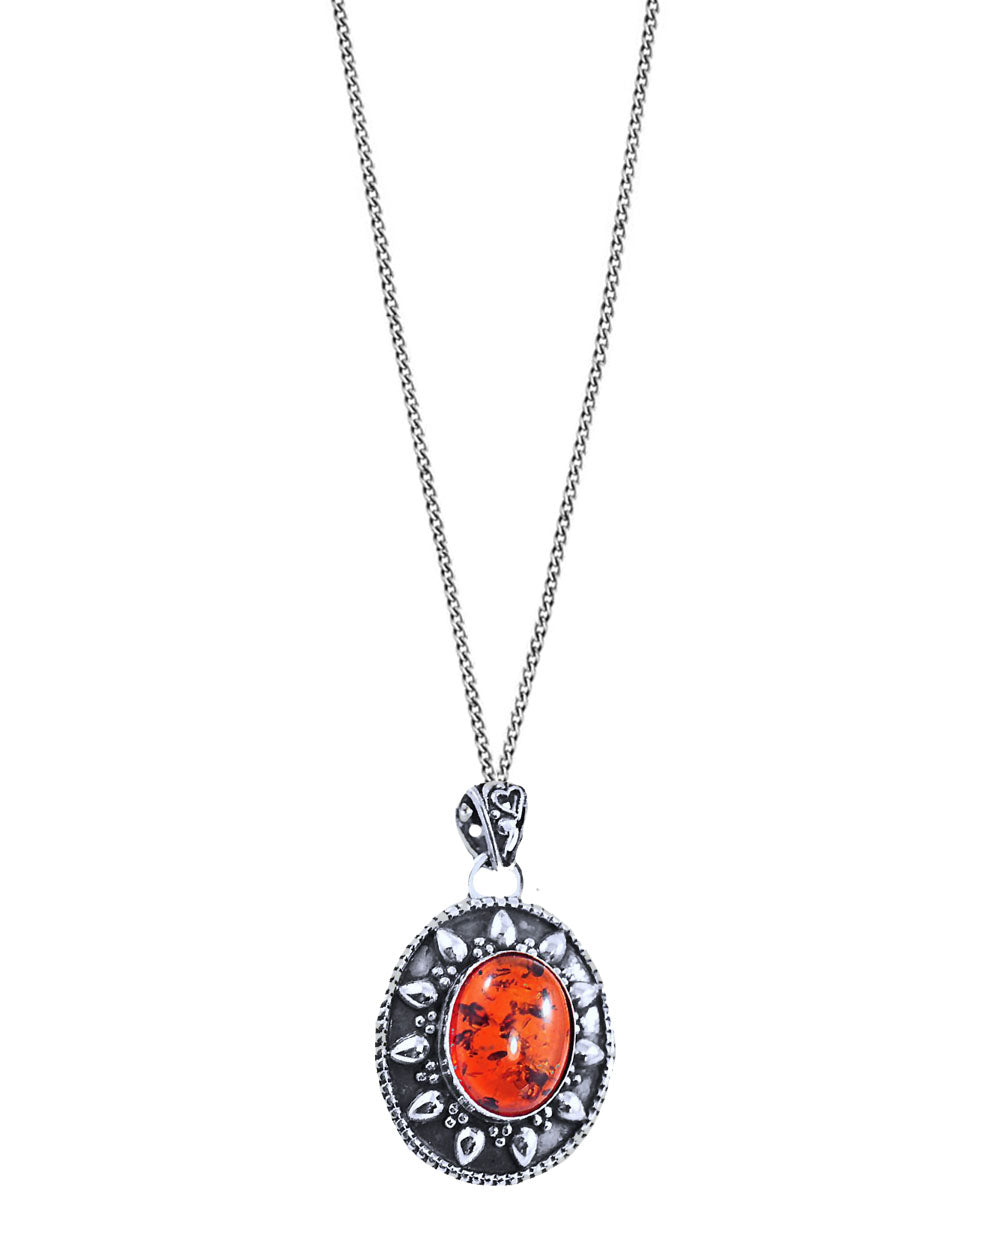 Glow Amber Pendant Necklace in Sterling Silver